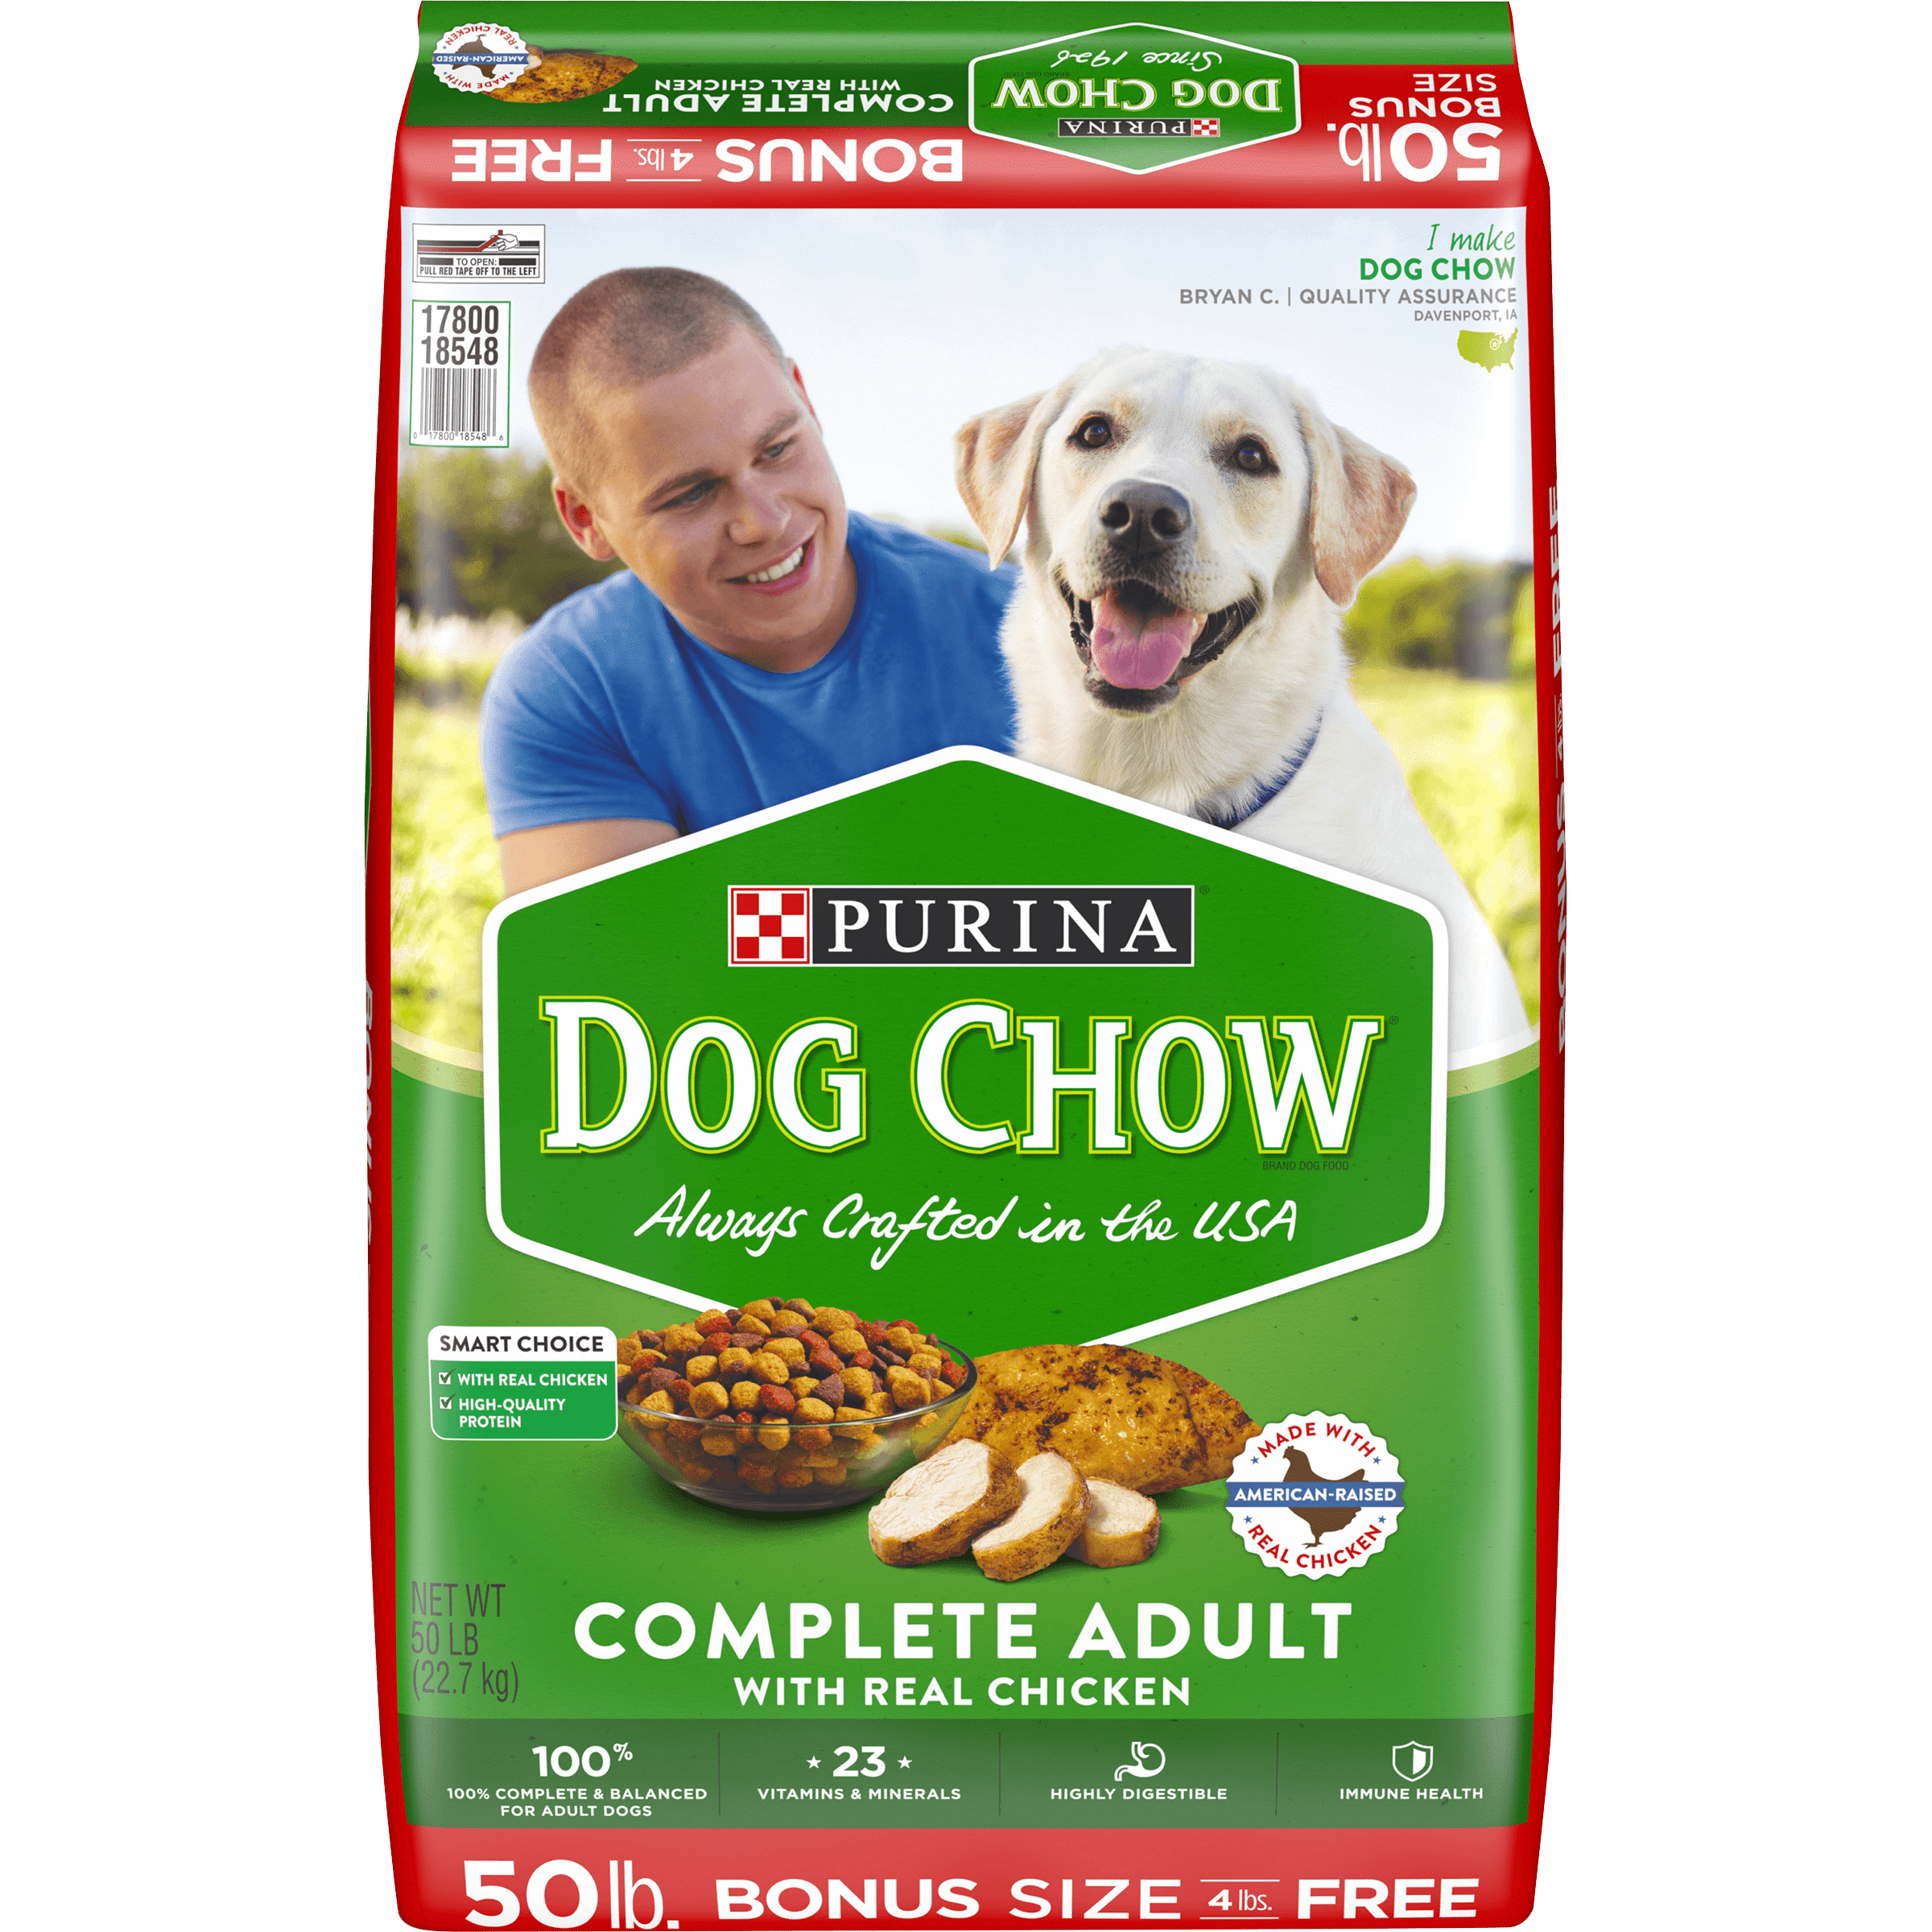 Purina Dog Chow Dry Dog Food, Complete Adult With Real Chicken, 50 lb. Bag  - Walmart.com - Walmart.com